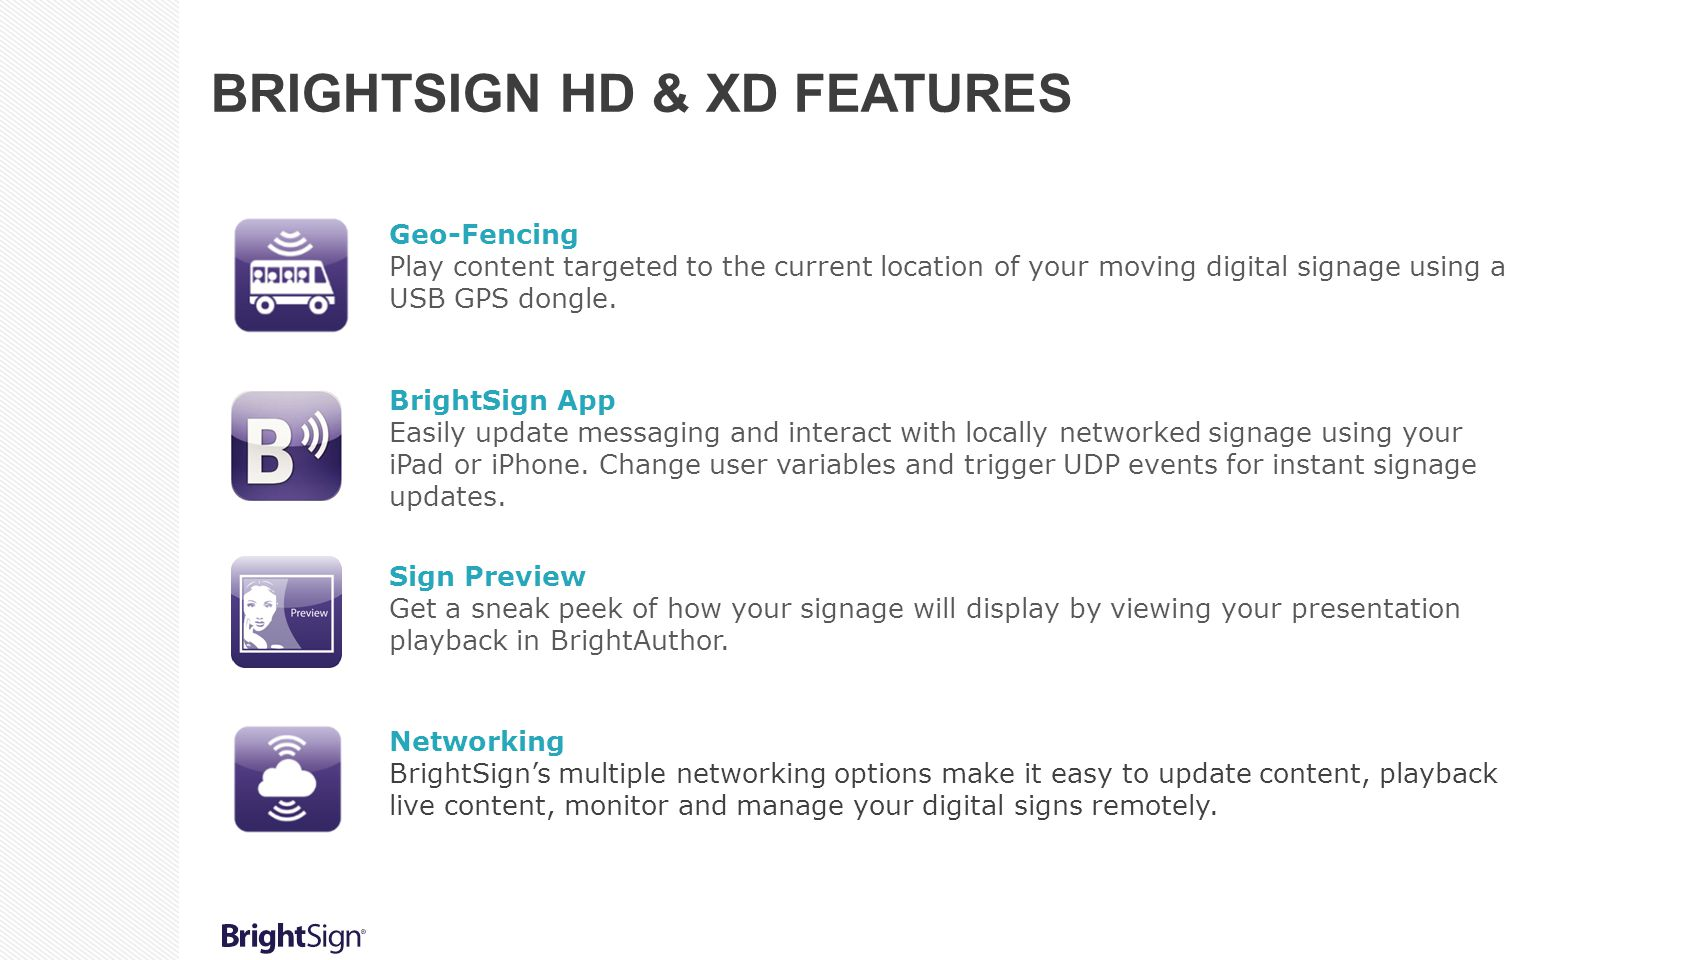 BrightSign HD & XD Features